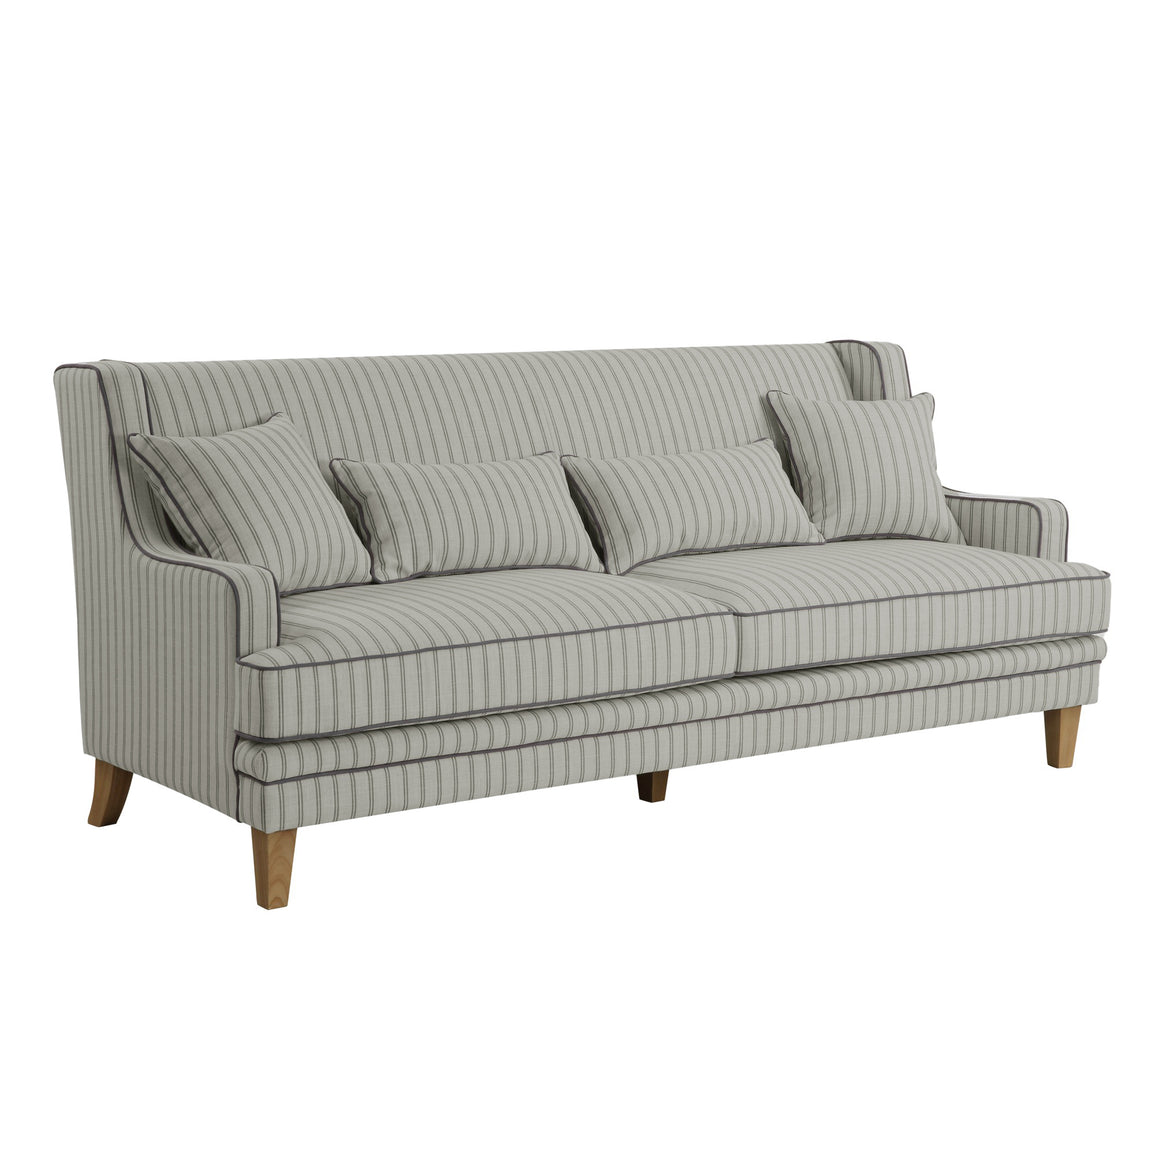 BONDI BLUE/WHITE PIN STRIPE 3 SEAT SOFA